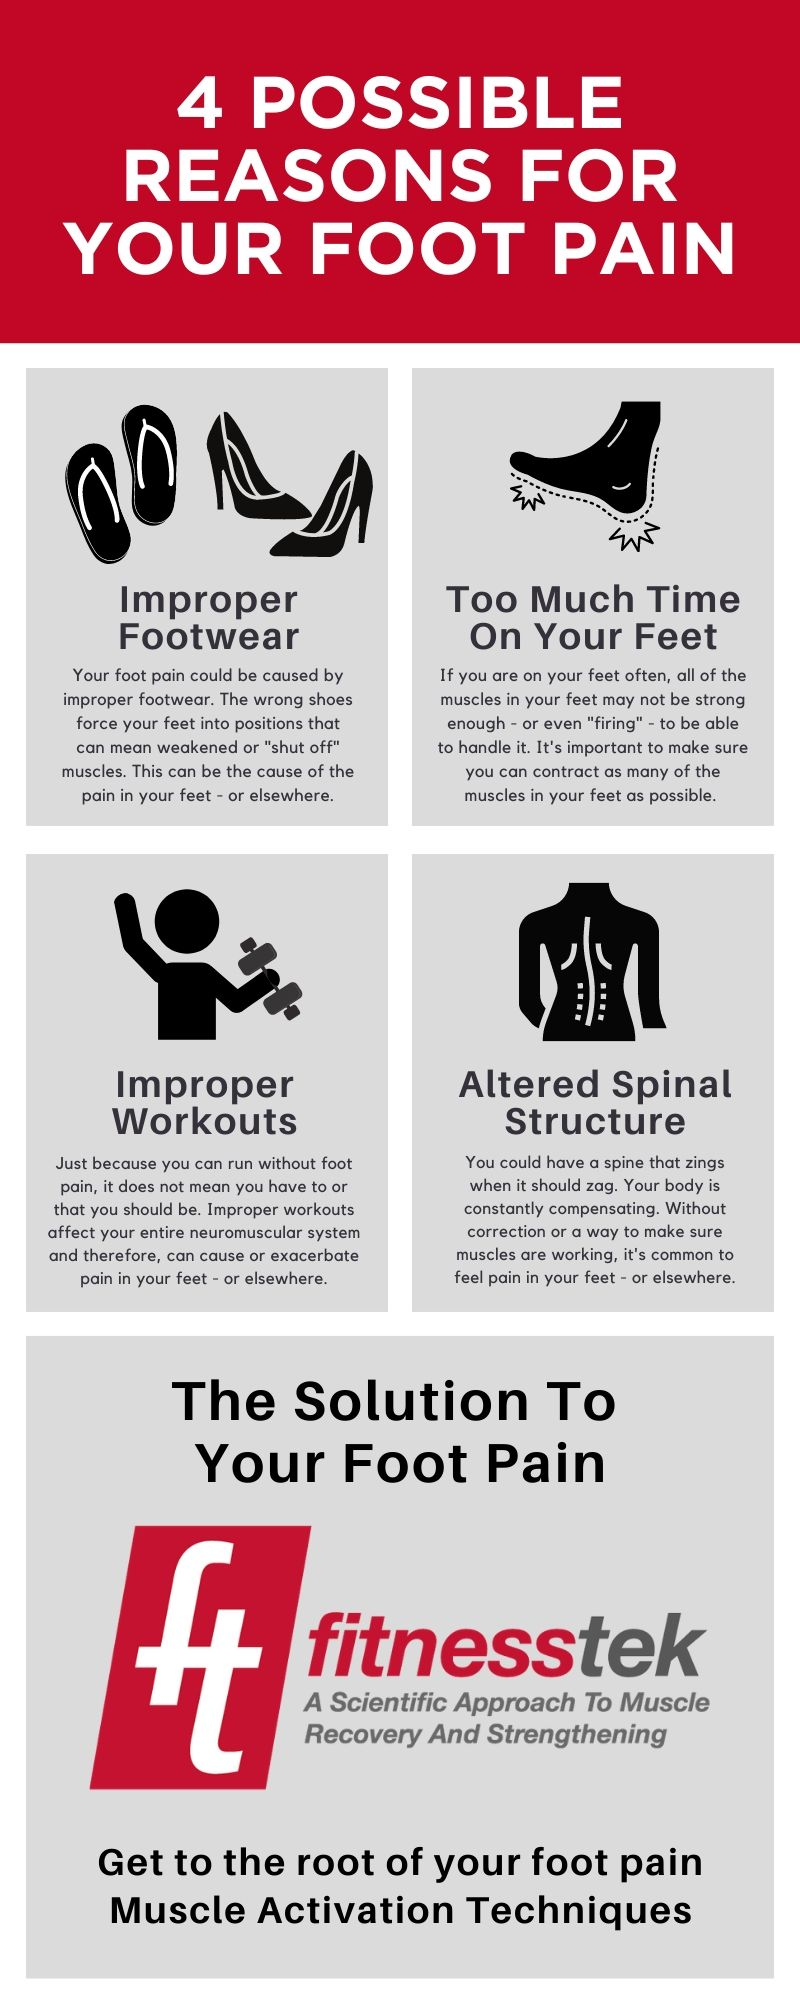 Four-reasons-for-foot-pain